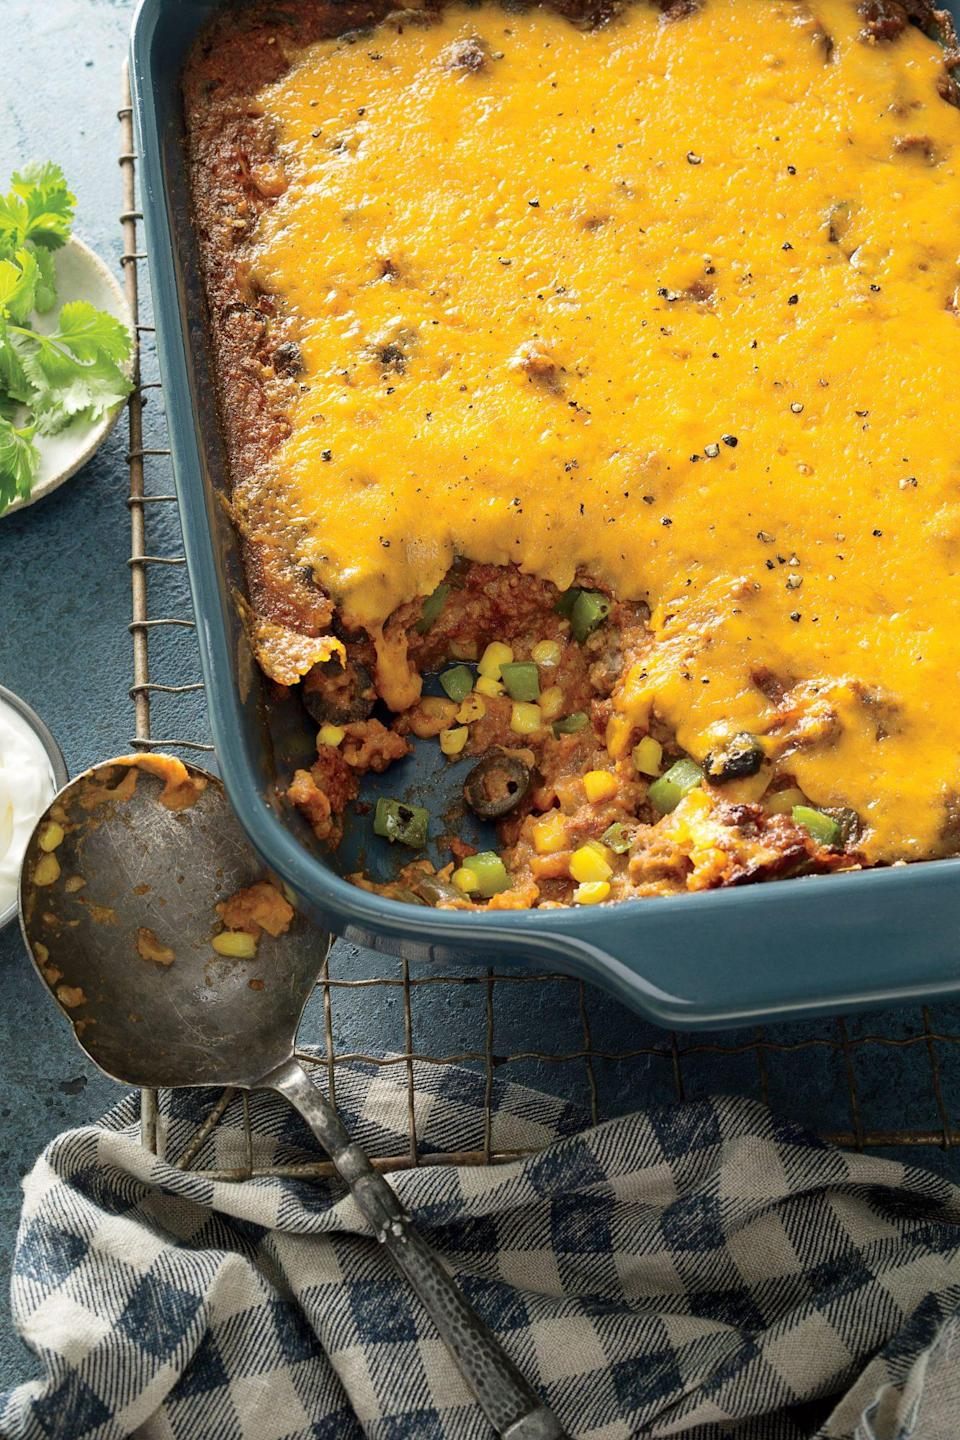 """<p><strong>Recipe: <a href=""""https://www.southernliving.com/recipes/deb-wise-tamale-pie-mix-up-recipe"""" rel=""""nofollow noopener"""" target=""""_blank"""" data-ylk=""""slk:Deb Wise's Tamale Pie Mix-Up"""" class=""""link rapid-noclick-resp"""">Deb Wise's Tamale Pie Mix-Up</a></strong></p> <p>What do you need for taco night? Ground beef, fresh peppers and onions, Mexican spices, and of course, plenty of cheese. What if we told you that instead of standing in line to top your own tacos, you could serve up a casserole with all that comfort in one scoop. We've been turning to this recipes at dinnertime for years, and your family is going to love it, too.</p>"""